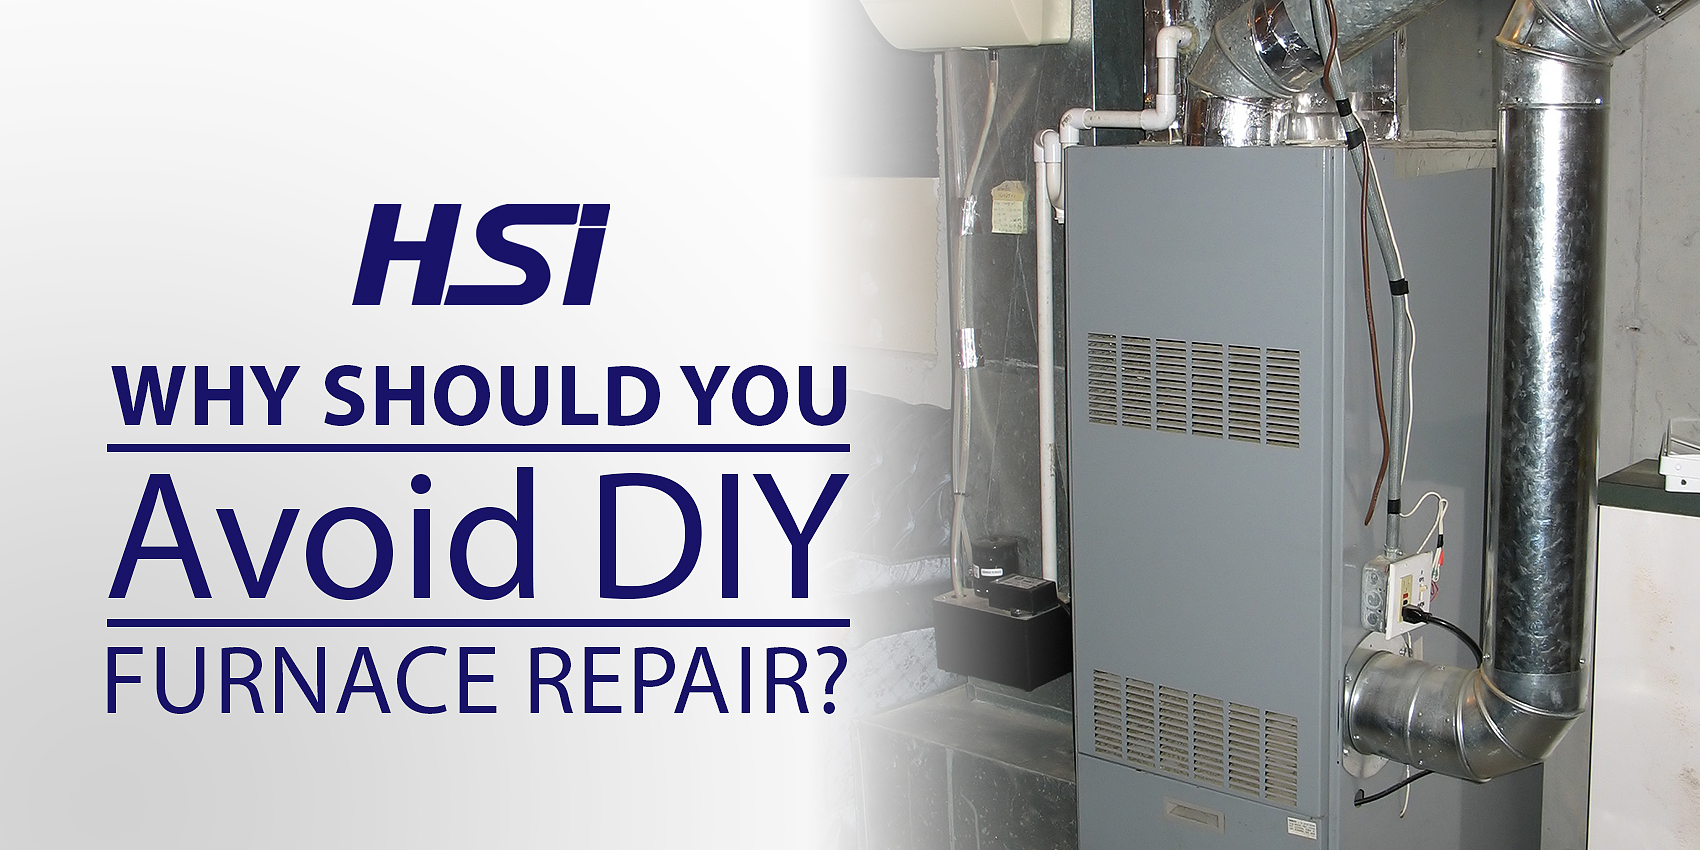 Why Should You Avoid DIY Furnace Repair?